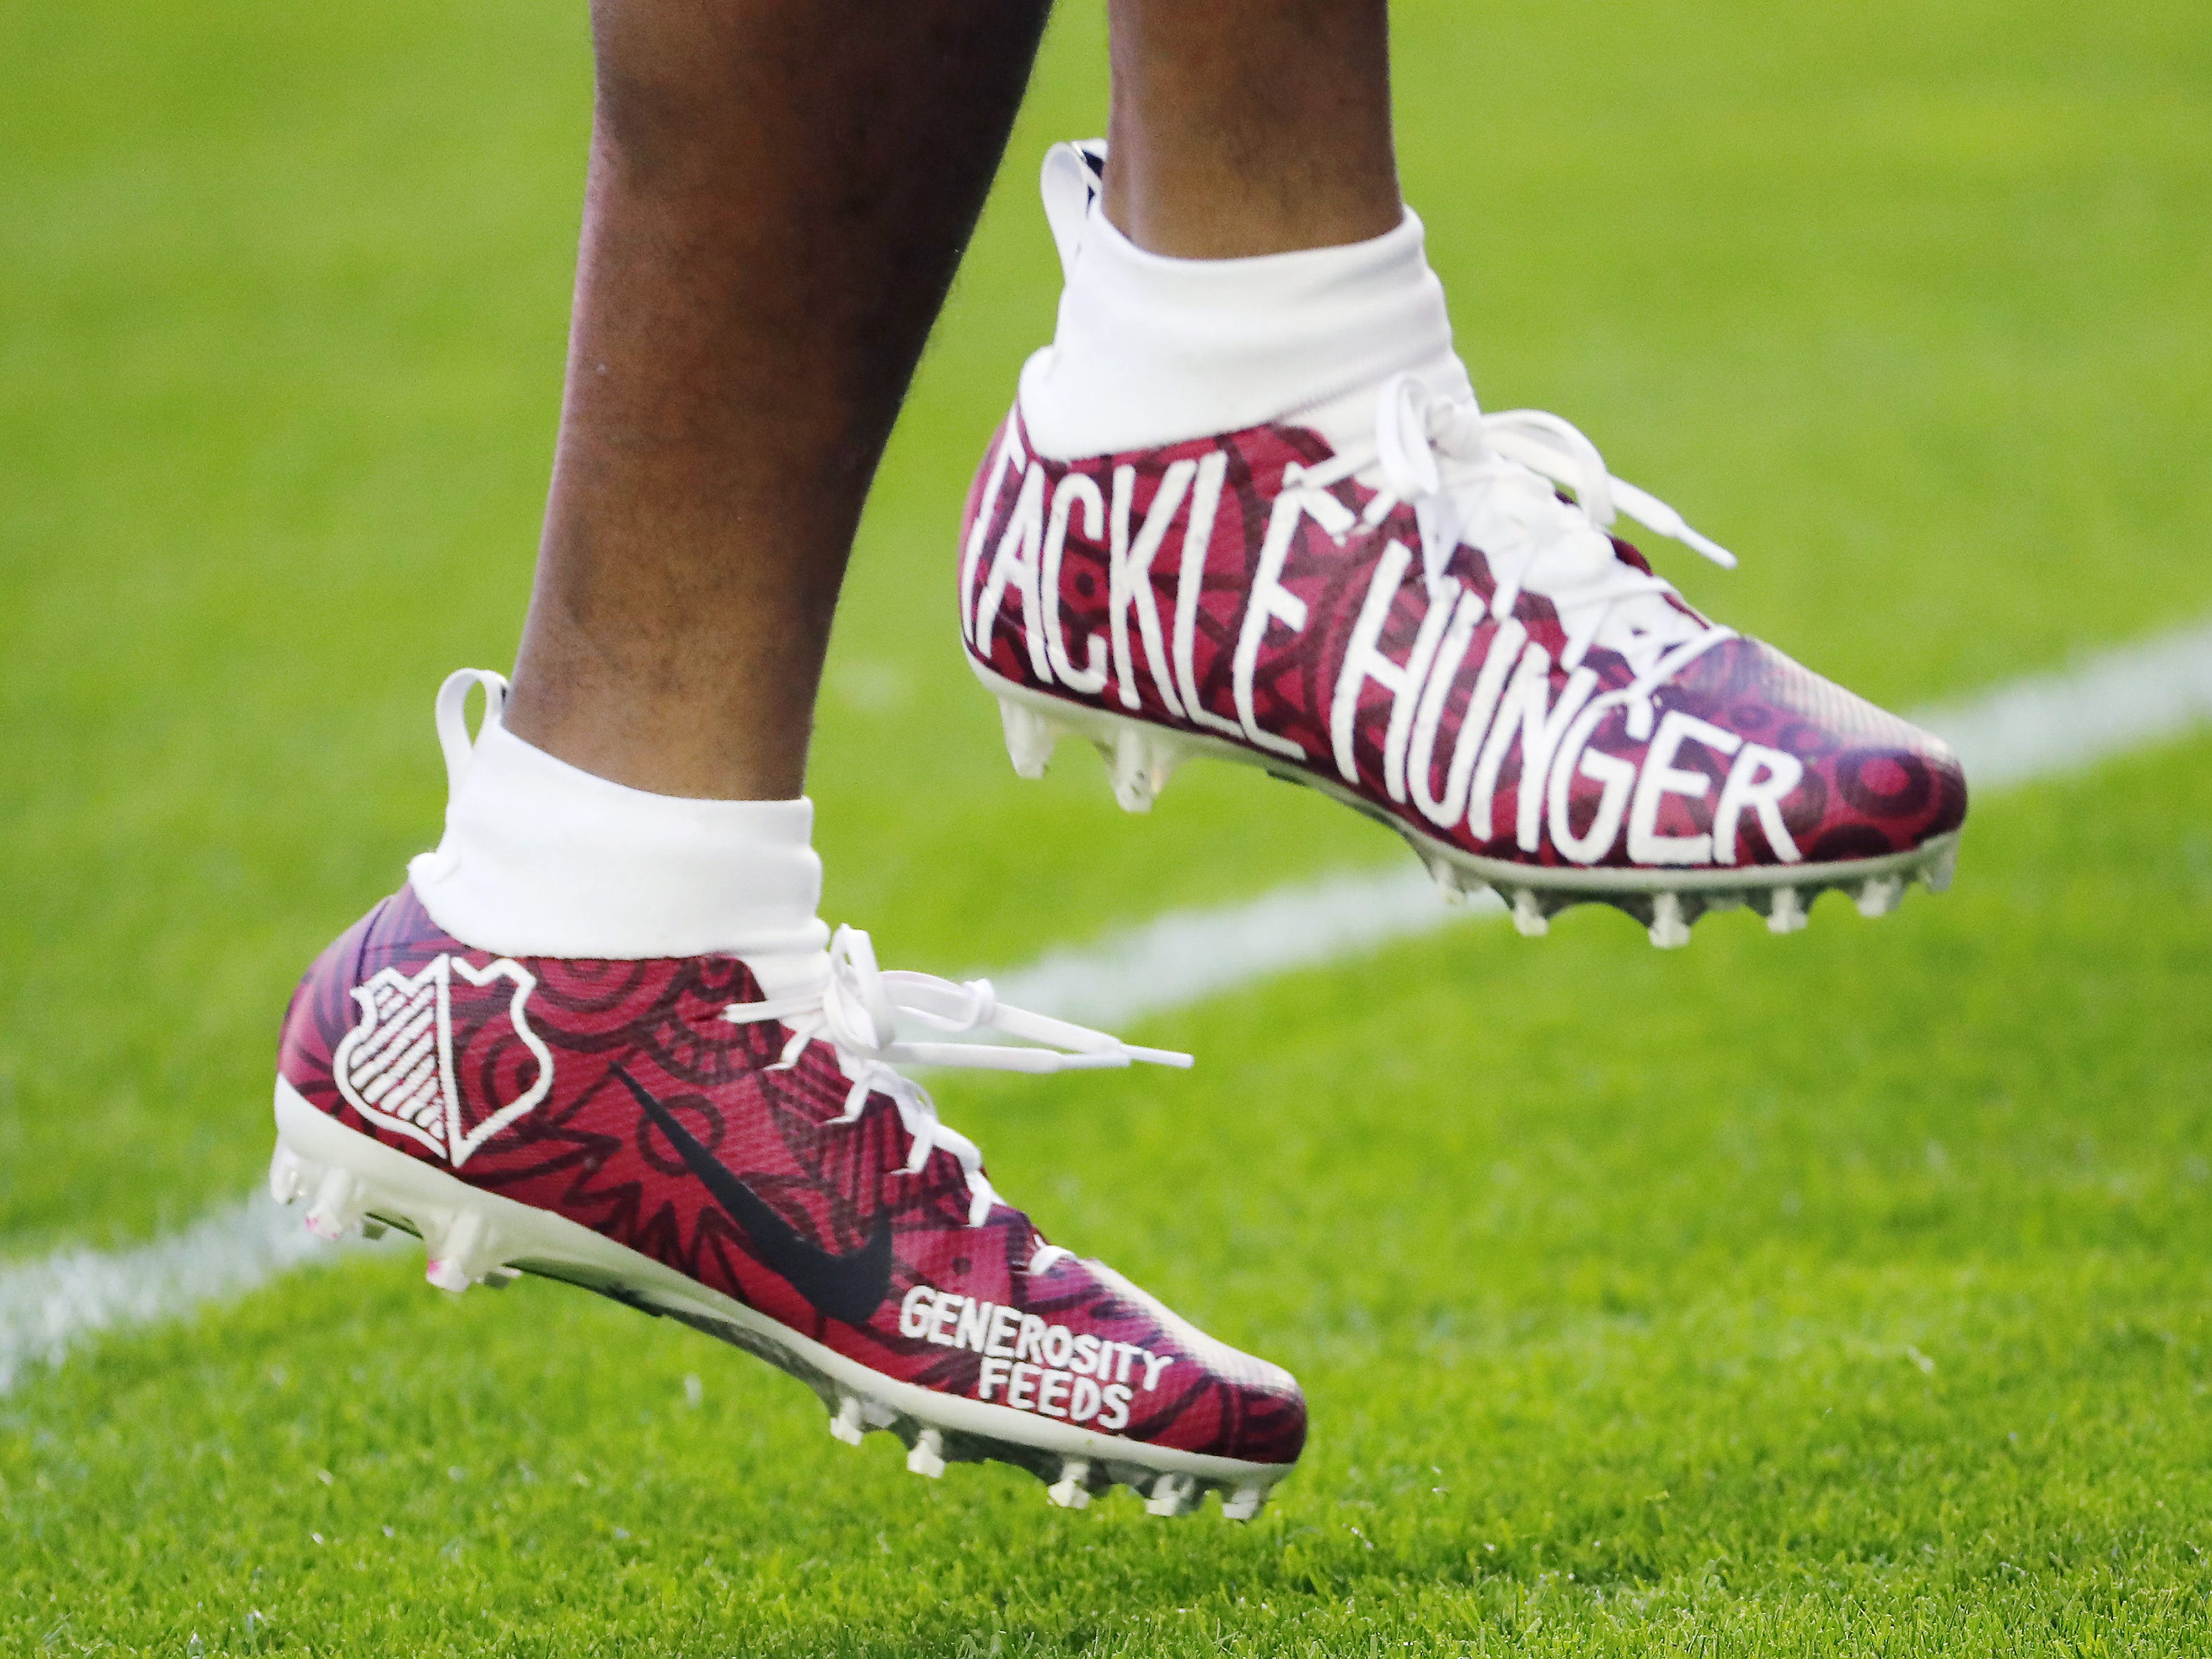 Arizona Cardinals strong safety Budda Baker (36) wears cleats as part of the NFL's My Cause My Cleats campaign before playing against the Detroit Lions December 9.